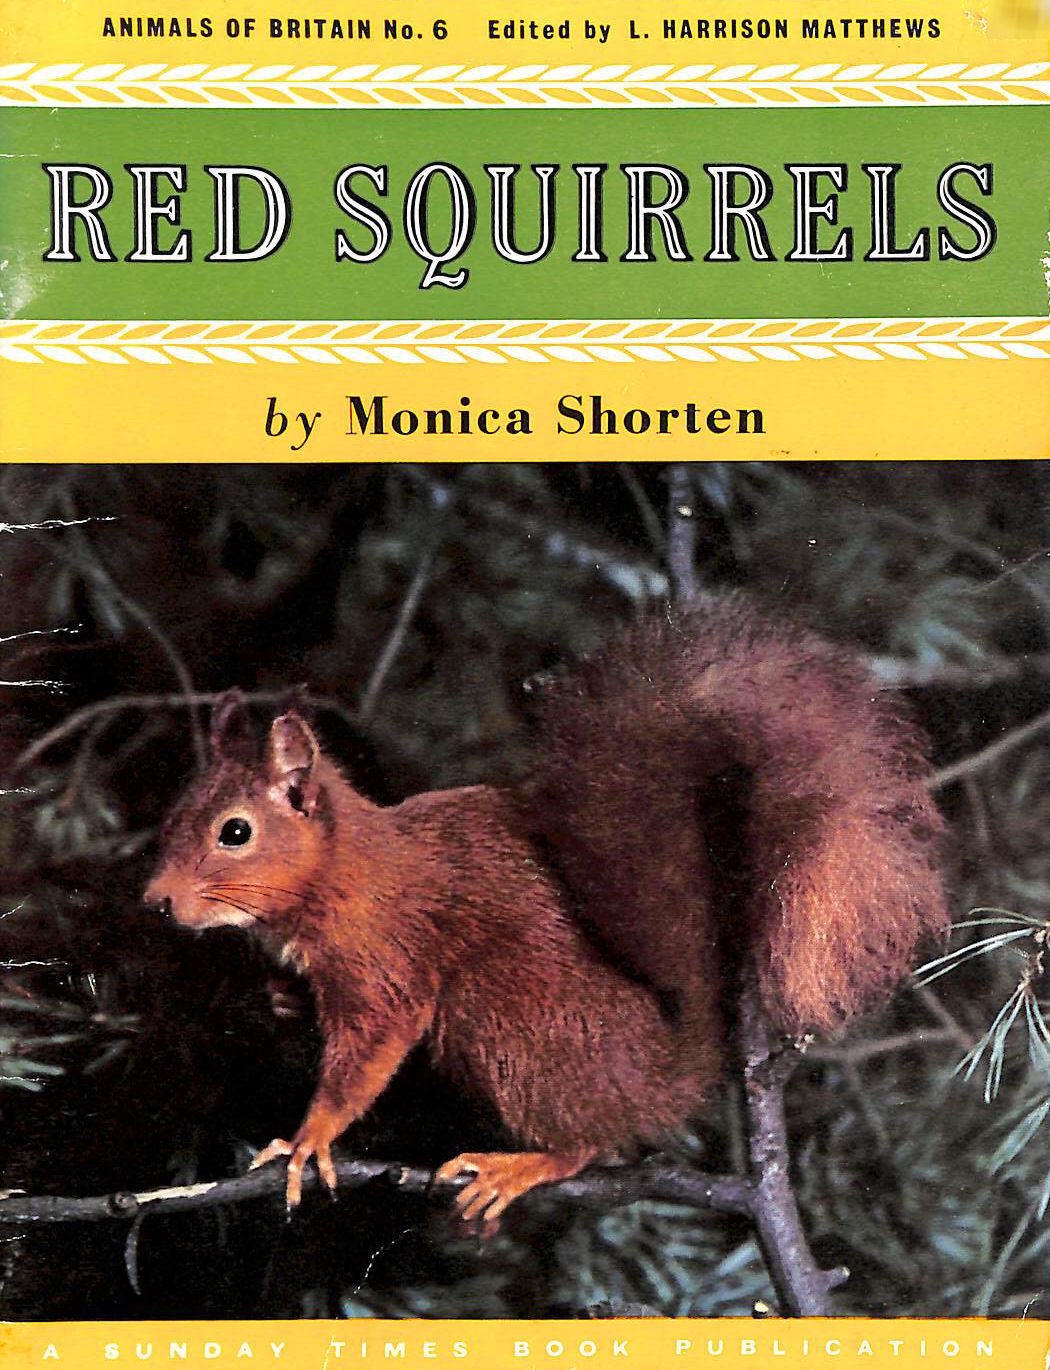 Image for Red squirrels (Animals of Britain series no 6)